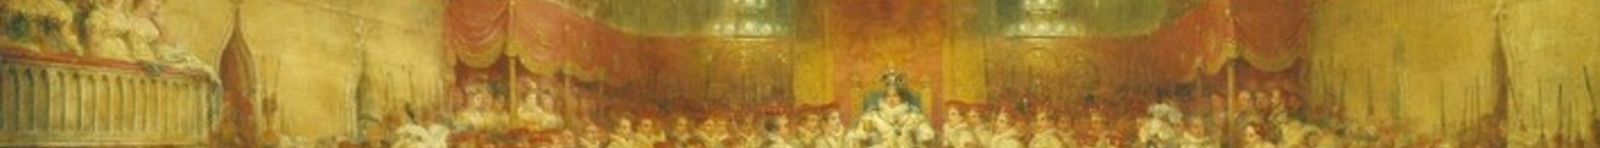 Coronation banquet of George IV.jpg